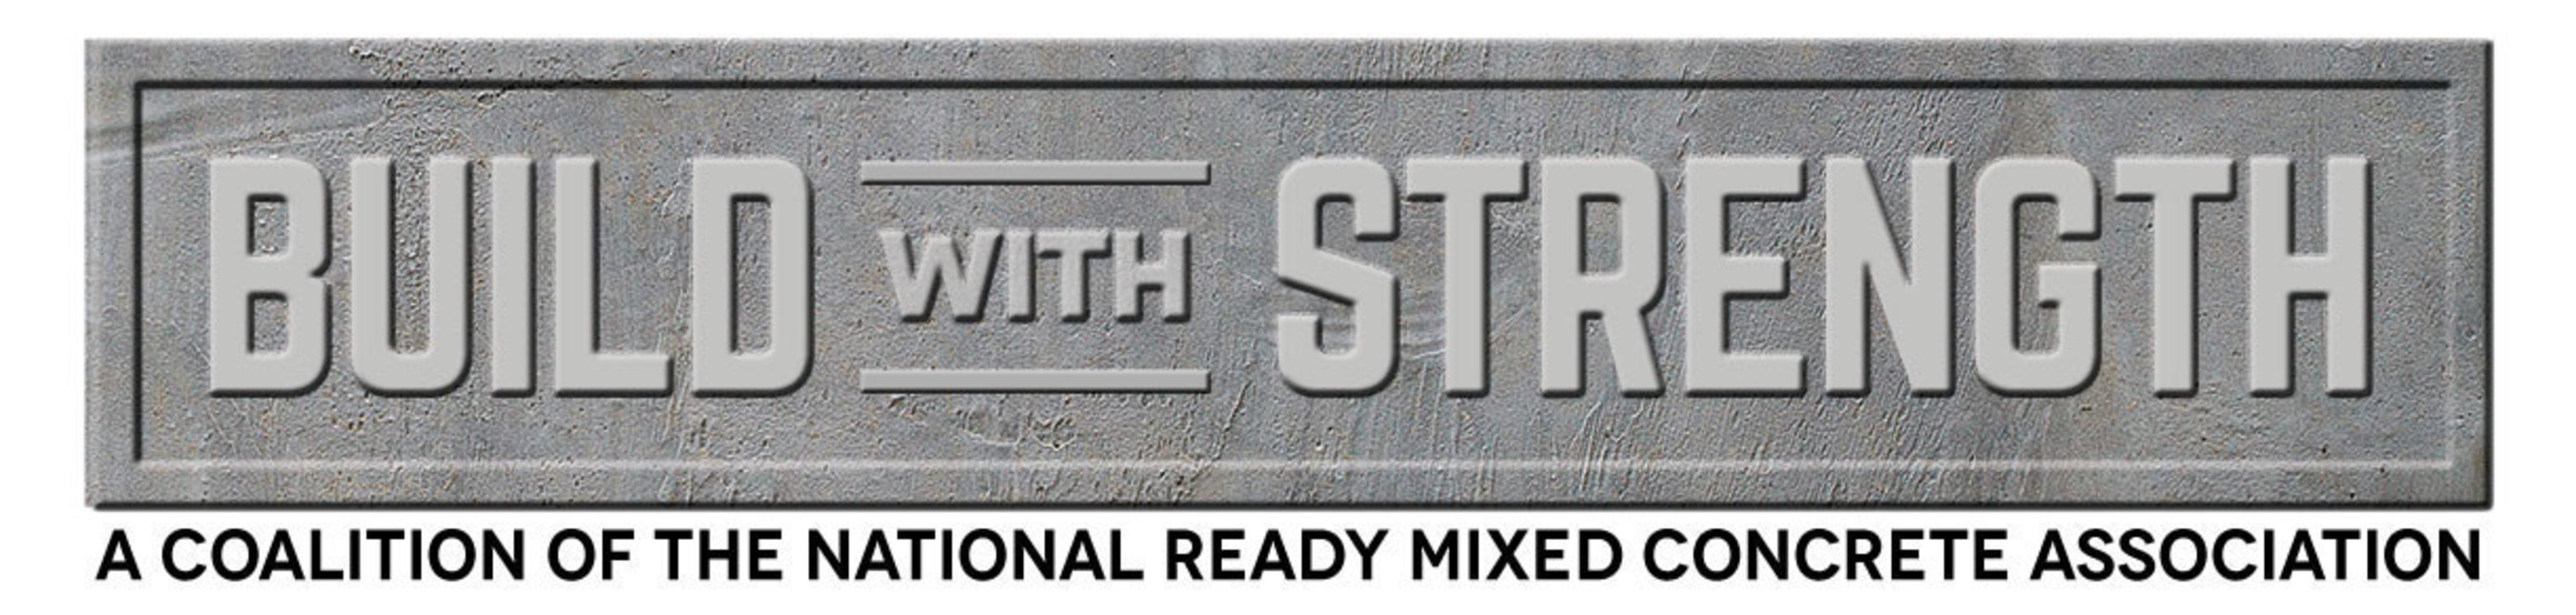 Build With Strength: A coalition of the National Ready Mixed Concrete Association